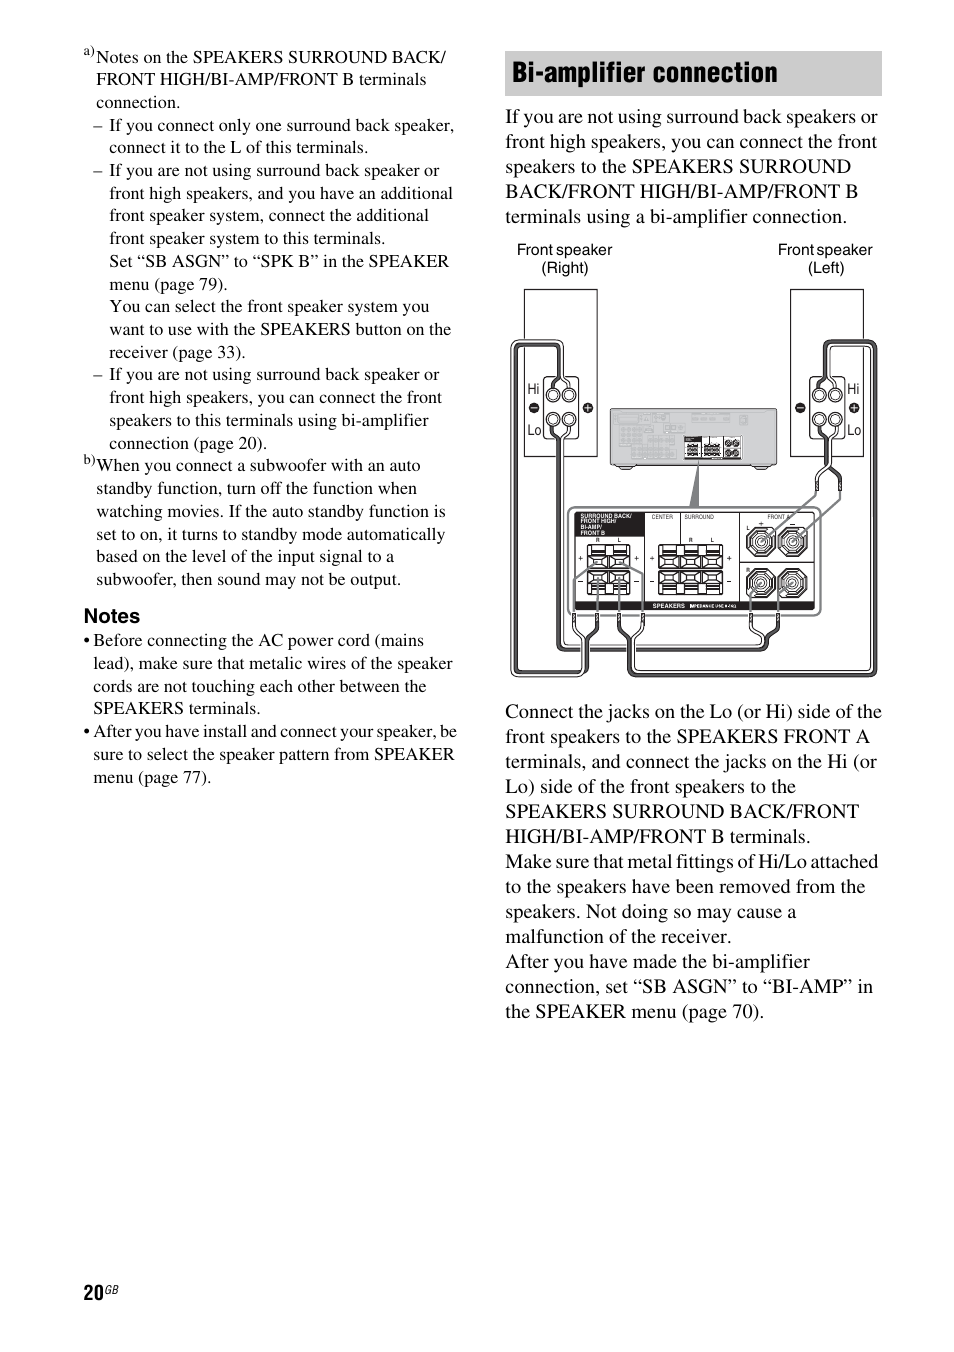 Bi-amplifier connection | Sony STR-DH710 User Manual | Page 20 / 100